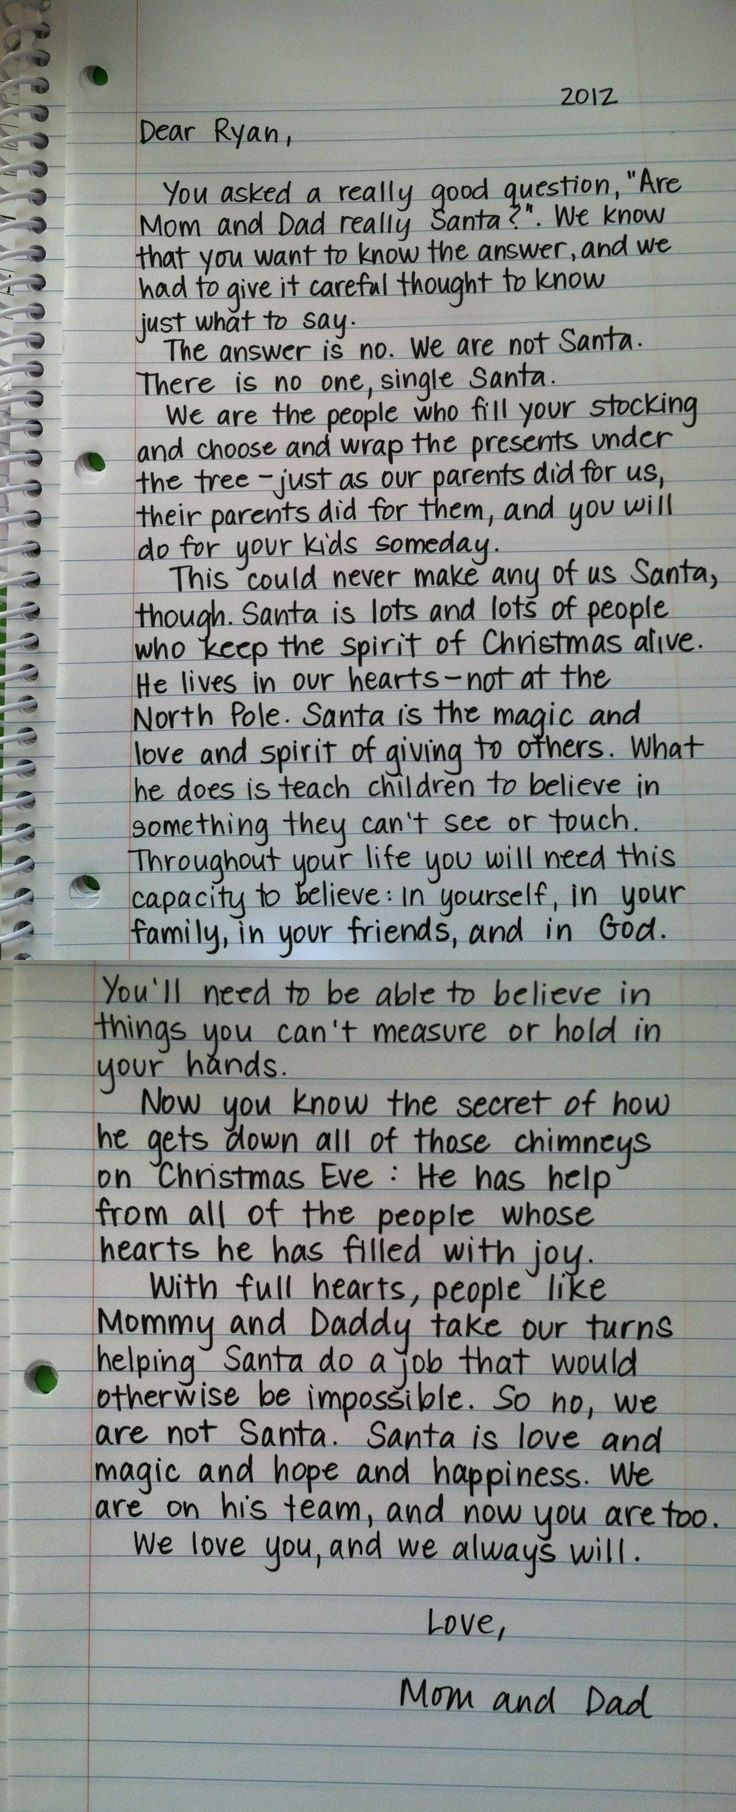 Someday, when I have to explain to my kids.... letter about Santa